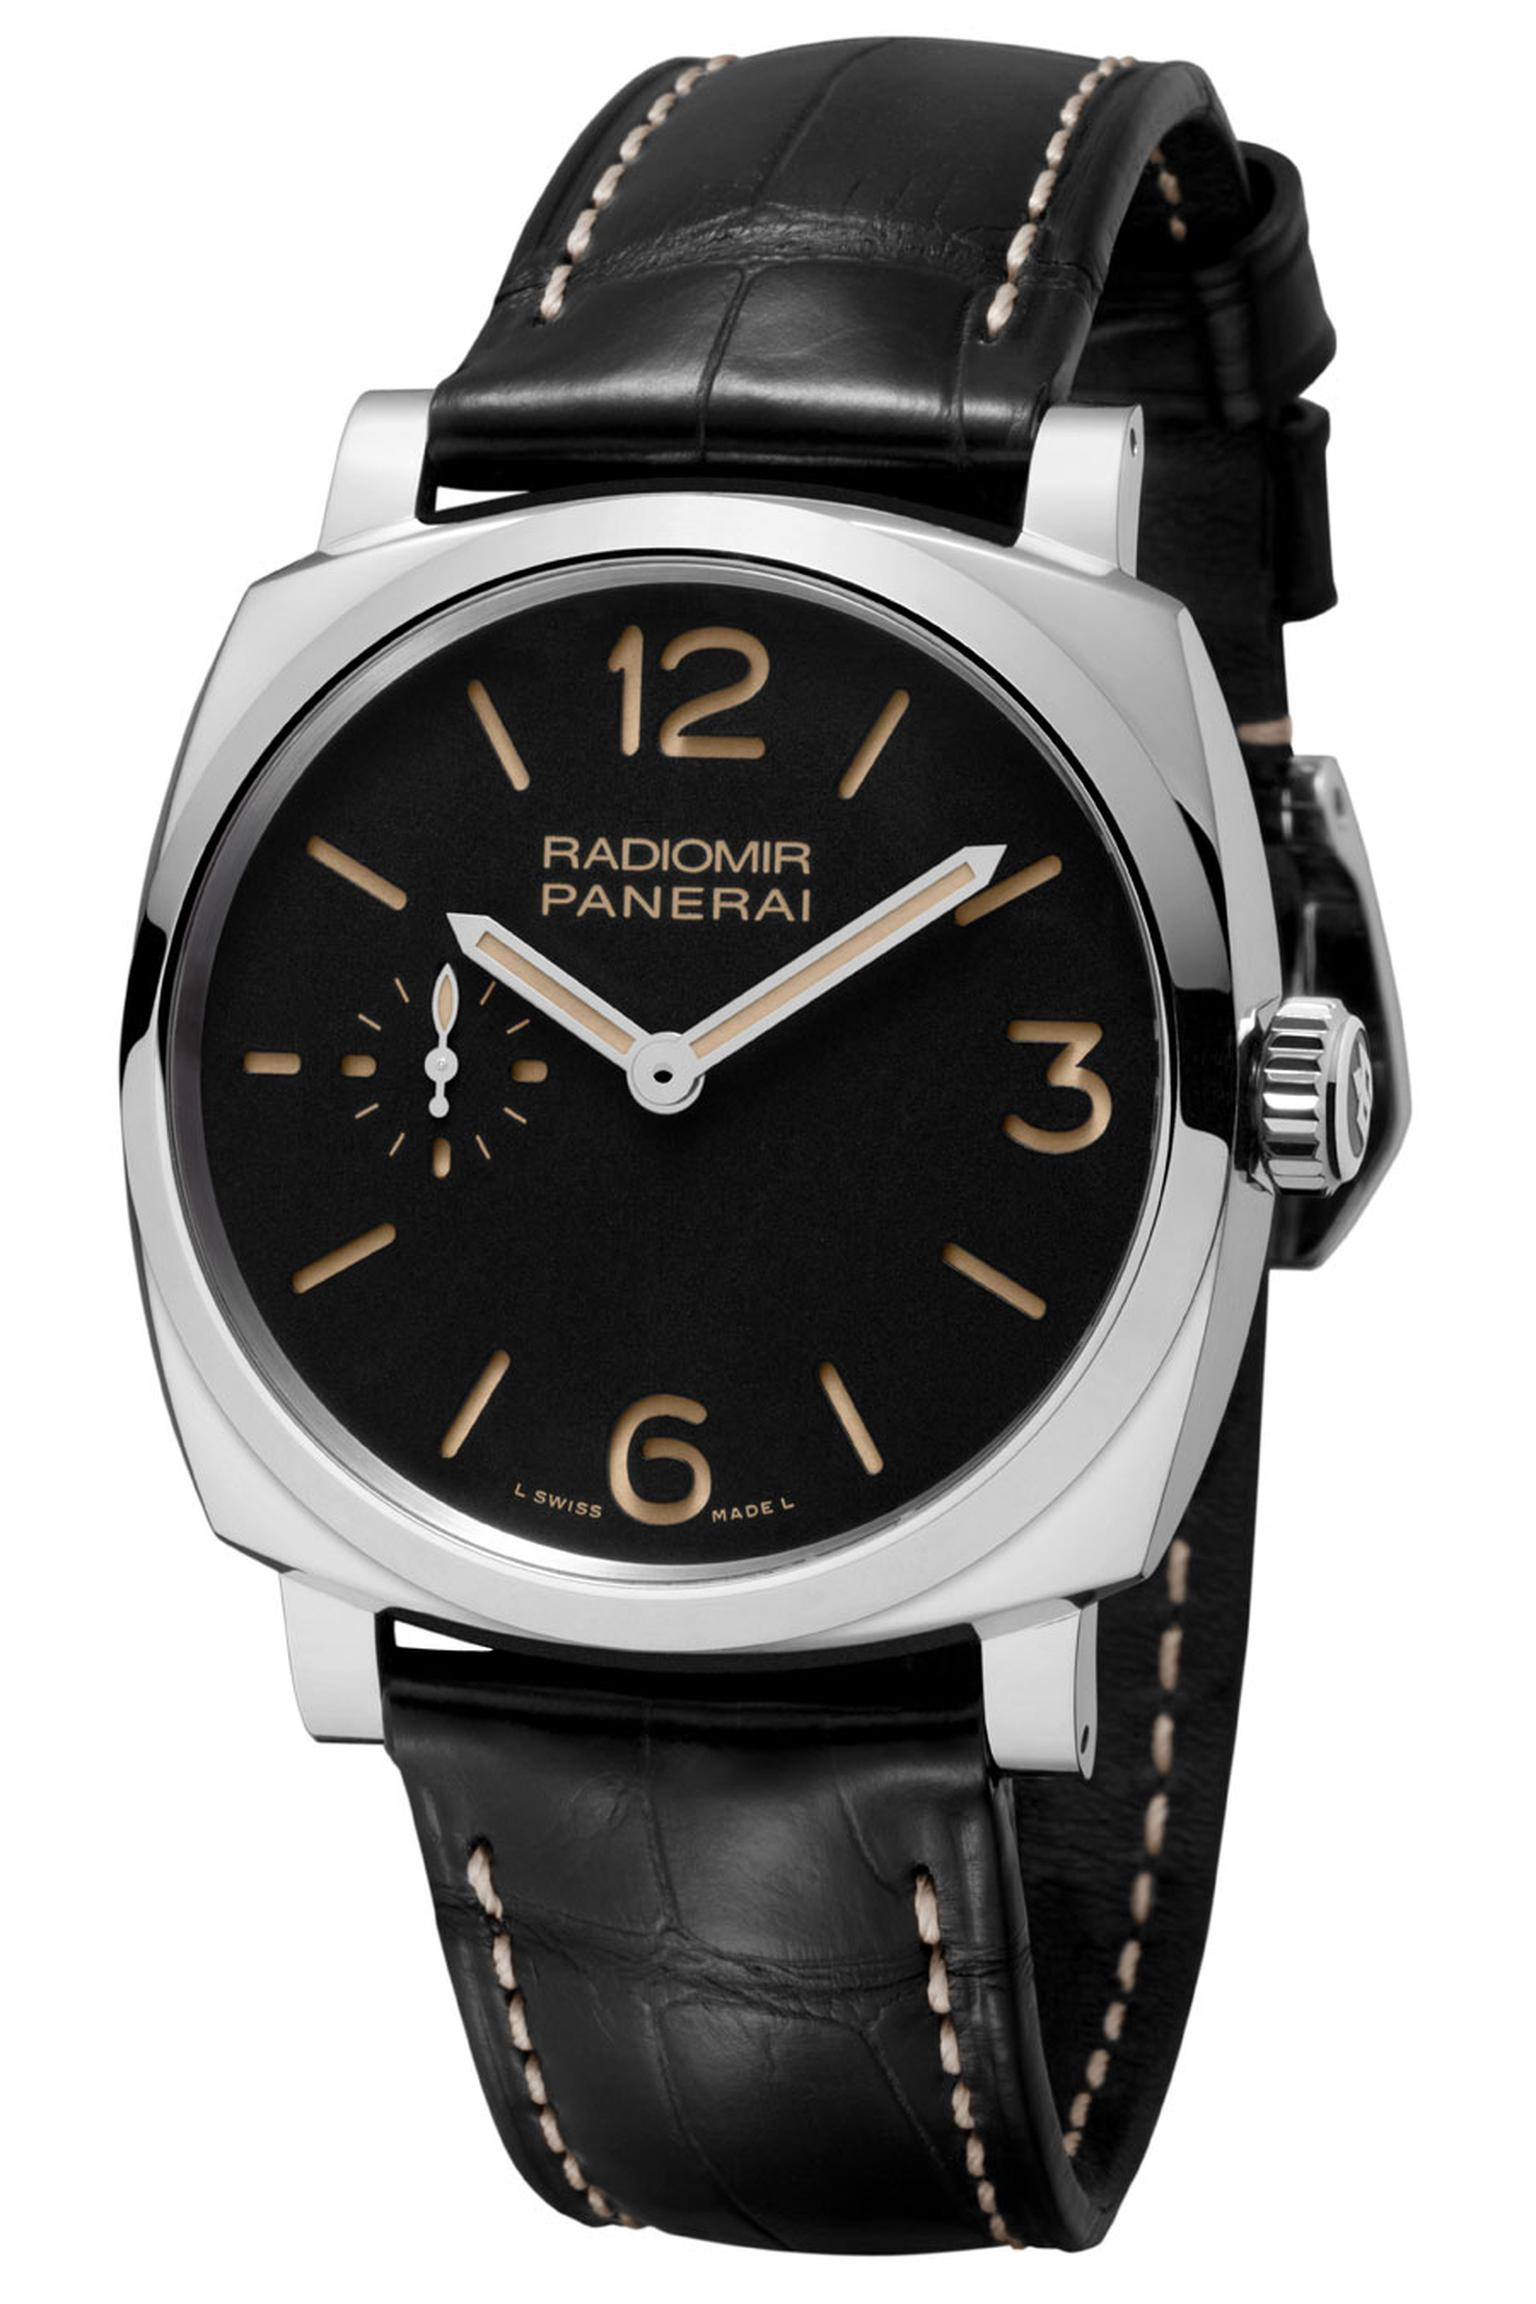 Officine-Panerai-PAM00512-press.jpg